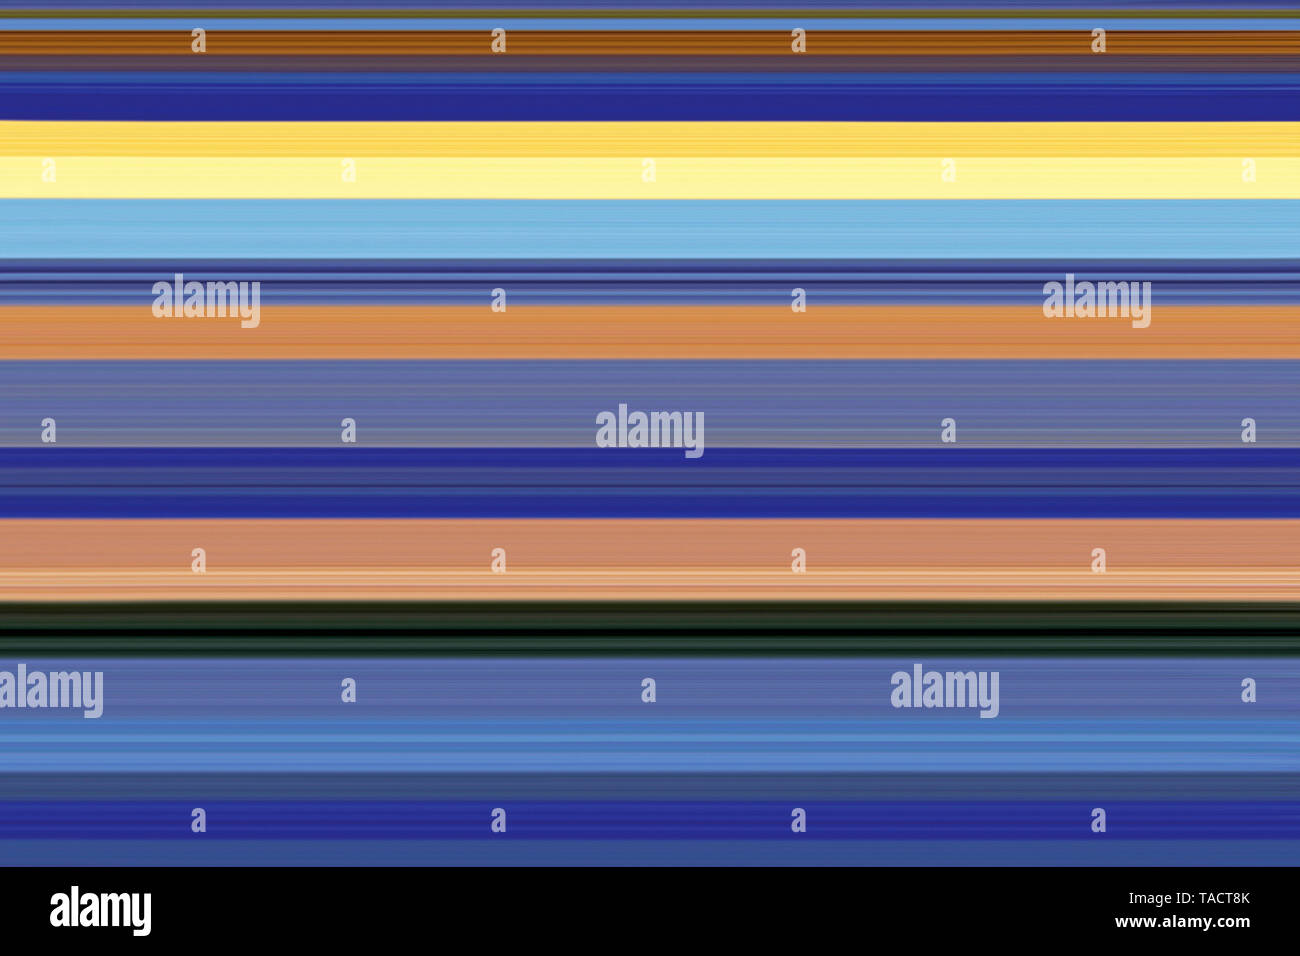 Modern fine art computer digital paintings creative hypnotist imagination colourful line vhm 16/10/2014. - Stock Image